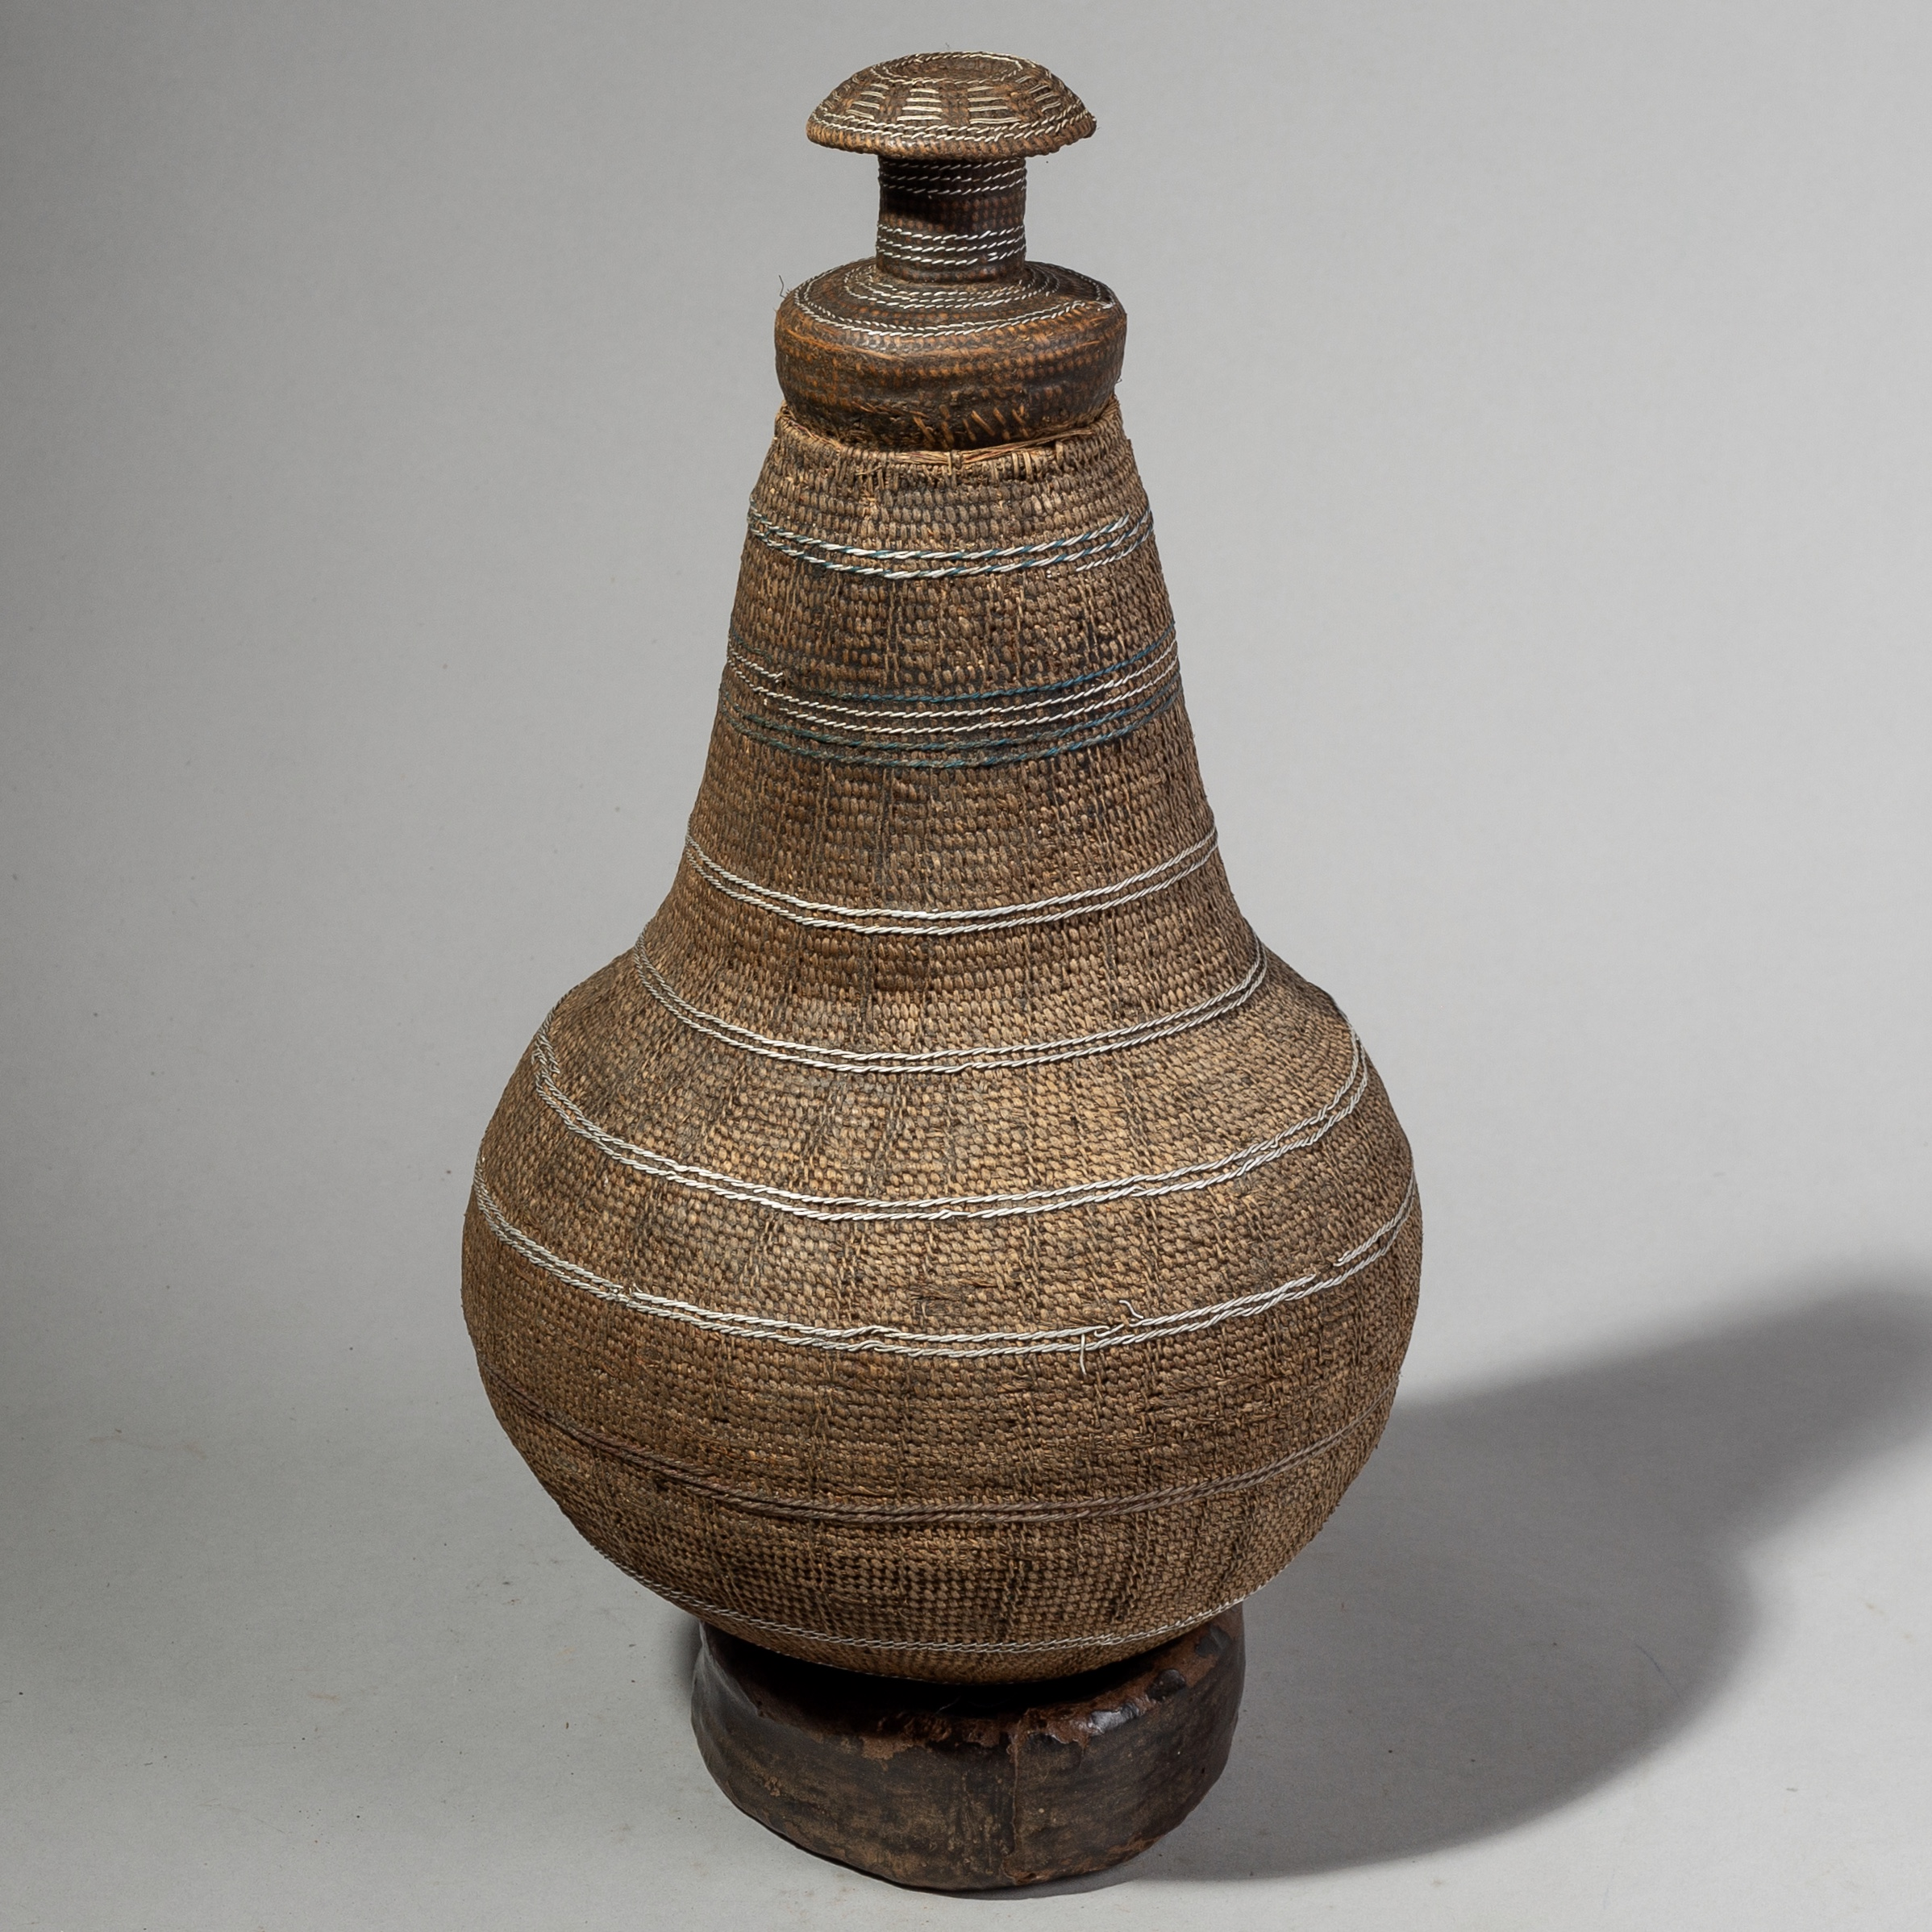 A TALL SOPHISTICATED BASKET FROM BORANA TRIBE OF ETHIOPIA ( No 1758 )